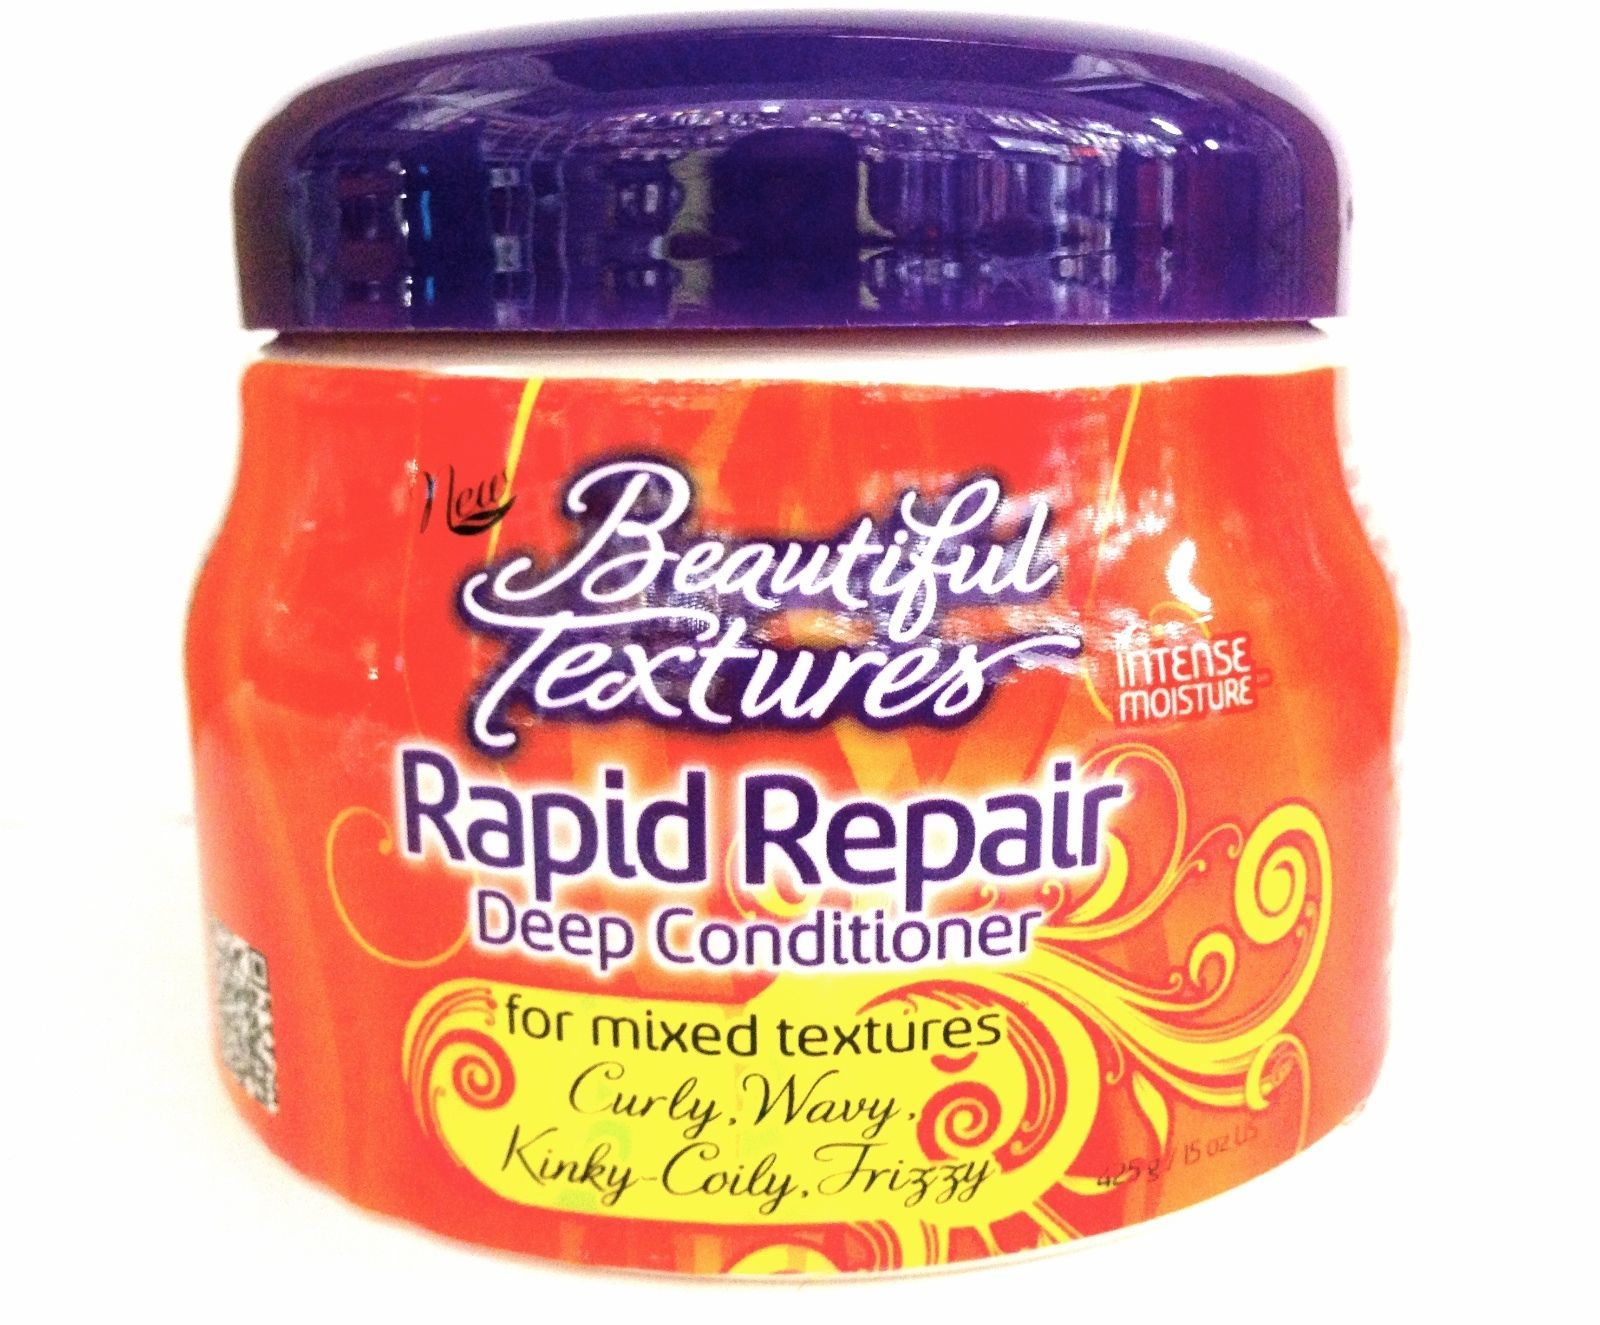 BEAUTIFUL TEXTURES RAPID REPAIR DEEP CONDITIONER FOR MIXED TEXTURES 15oz